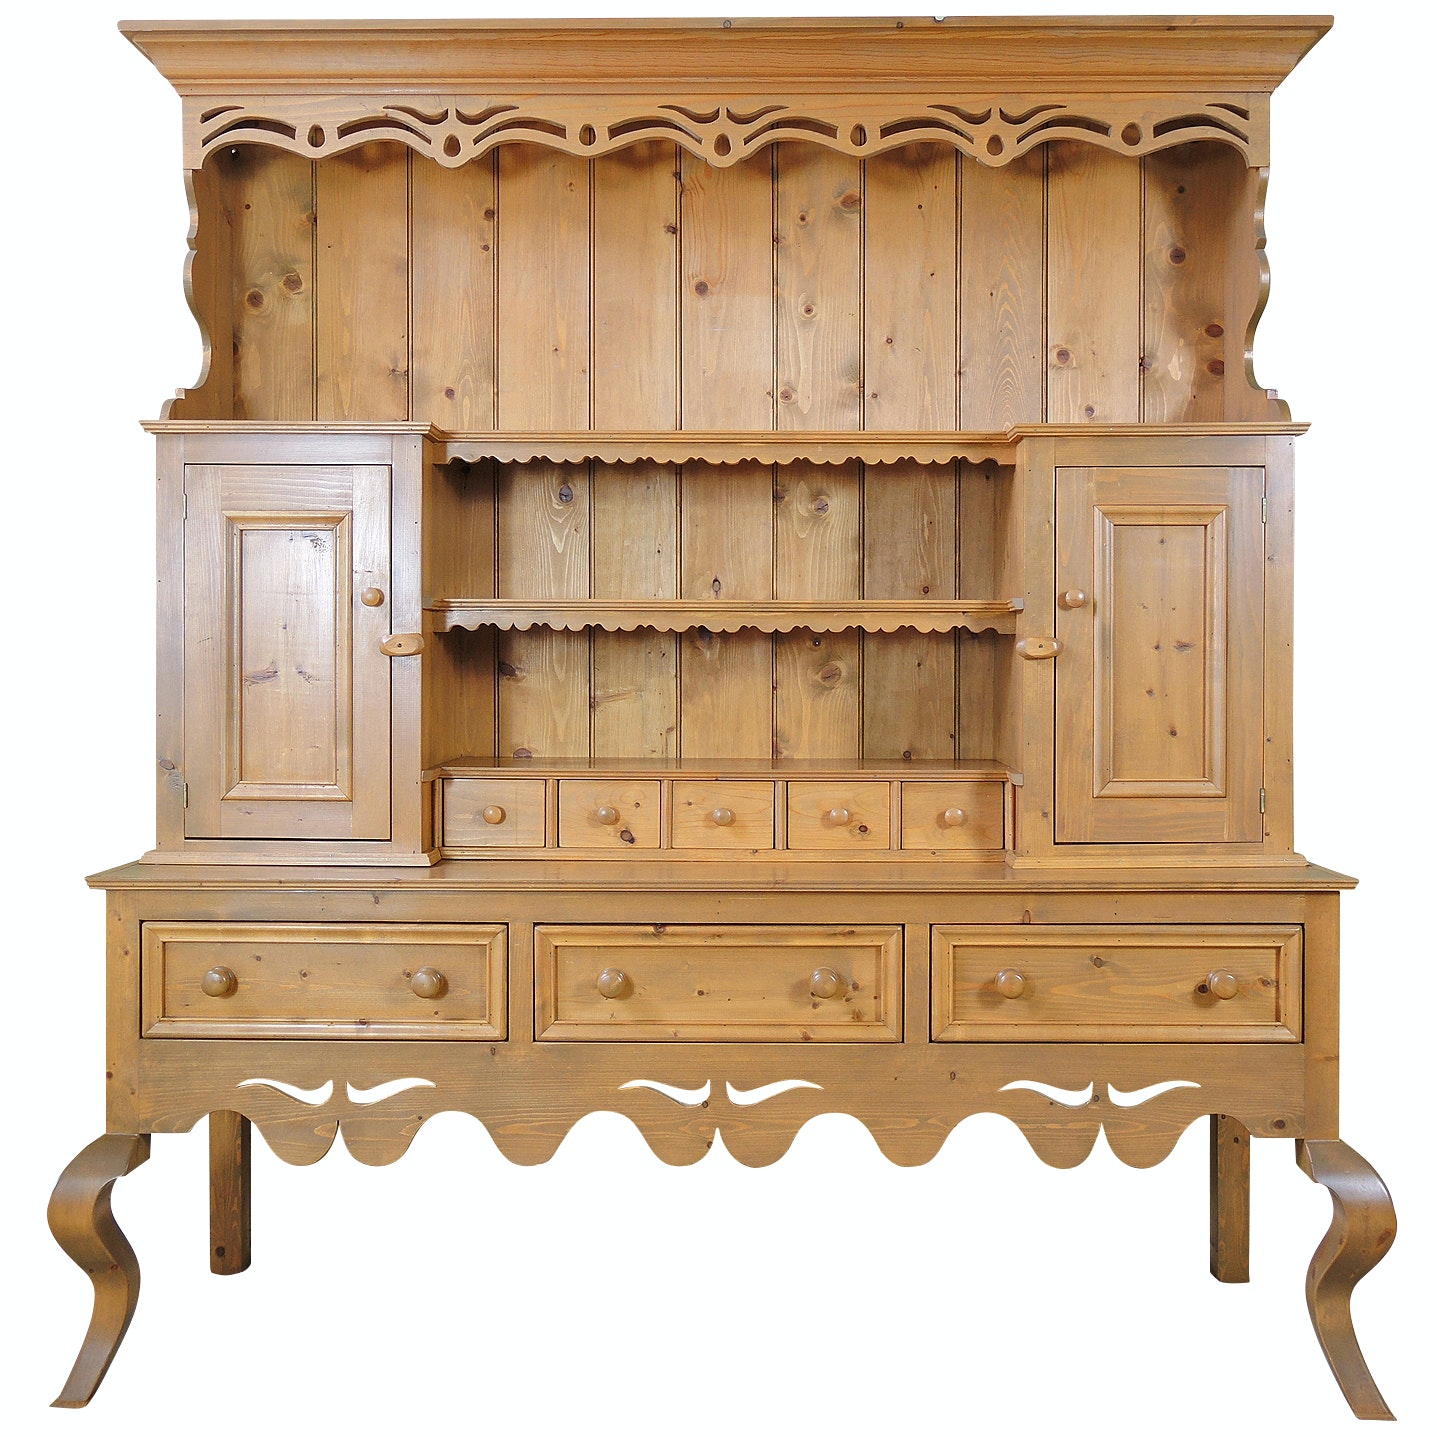 French Provincial Style Custom Crafted Pine Cupboard